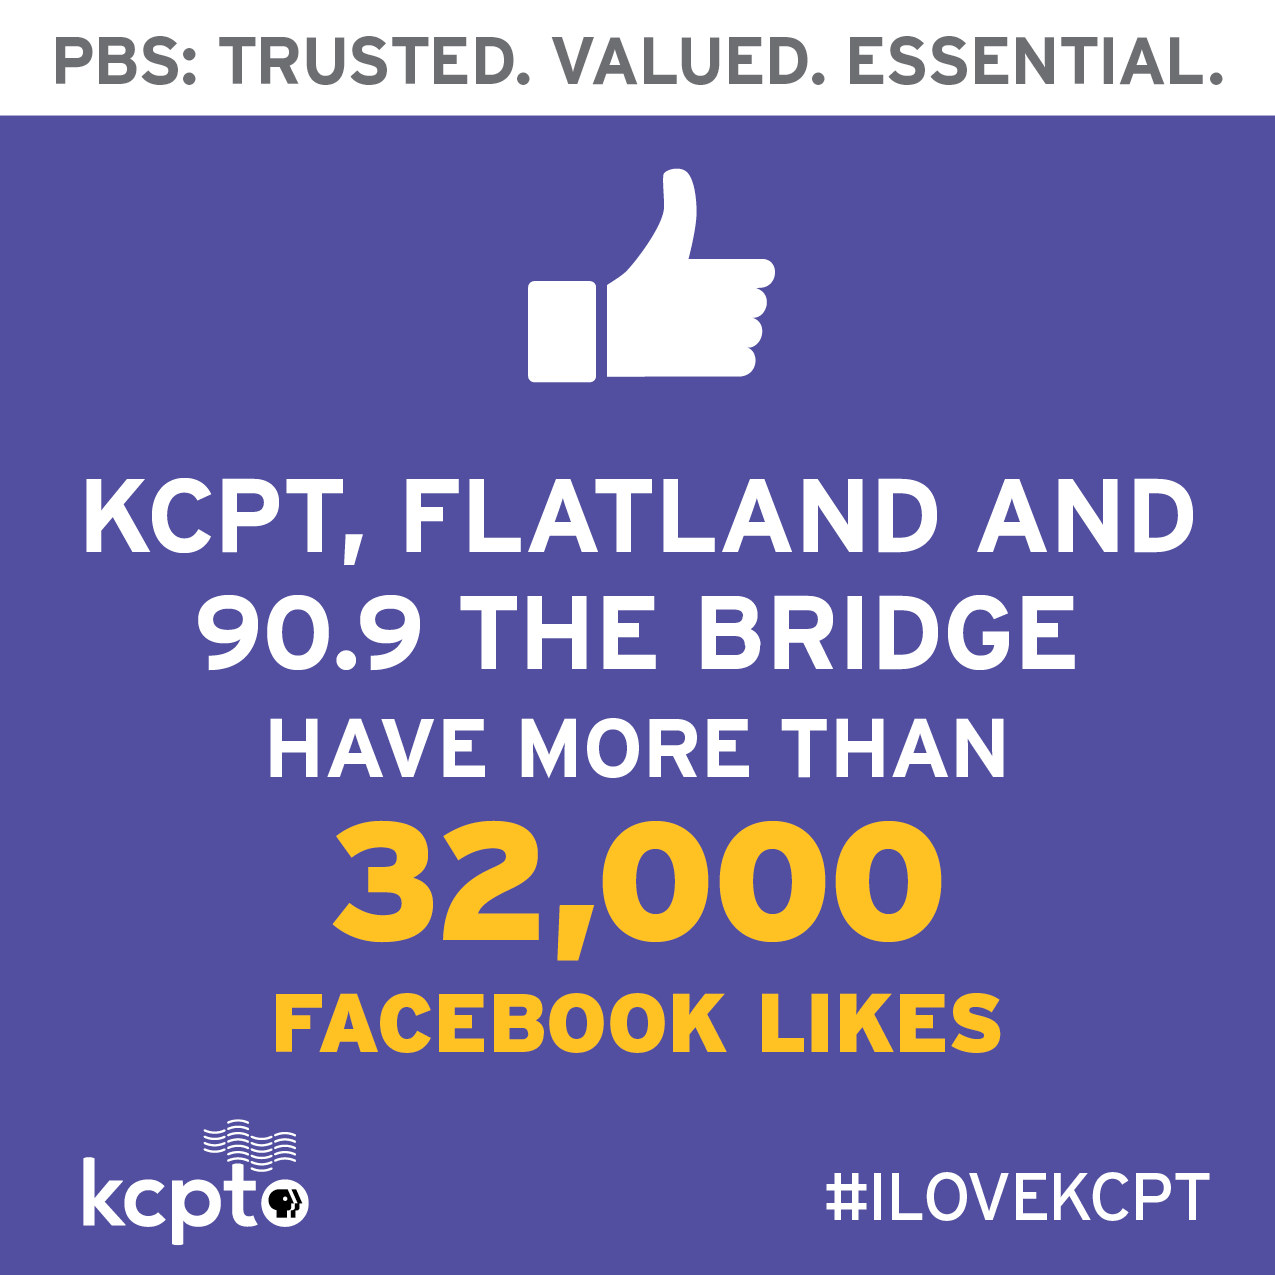 KCPT, Flatland and 90.9 the Bridge have over 32 thousand Facebook likes.